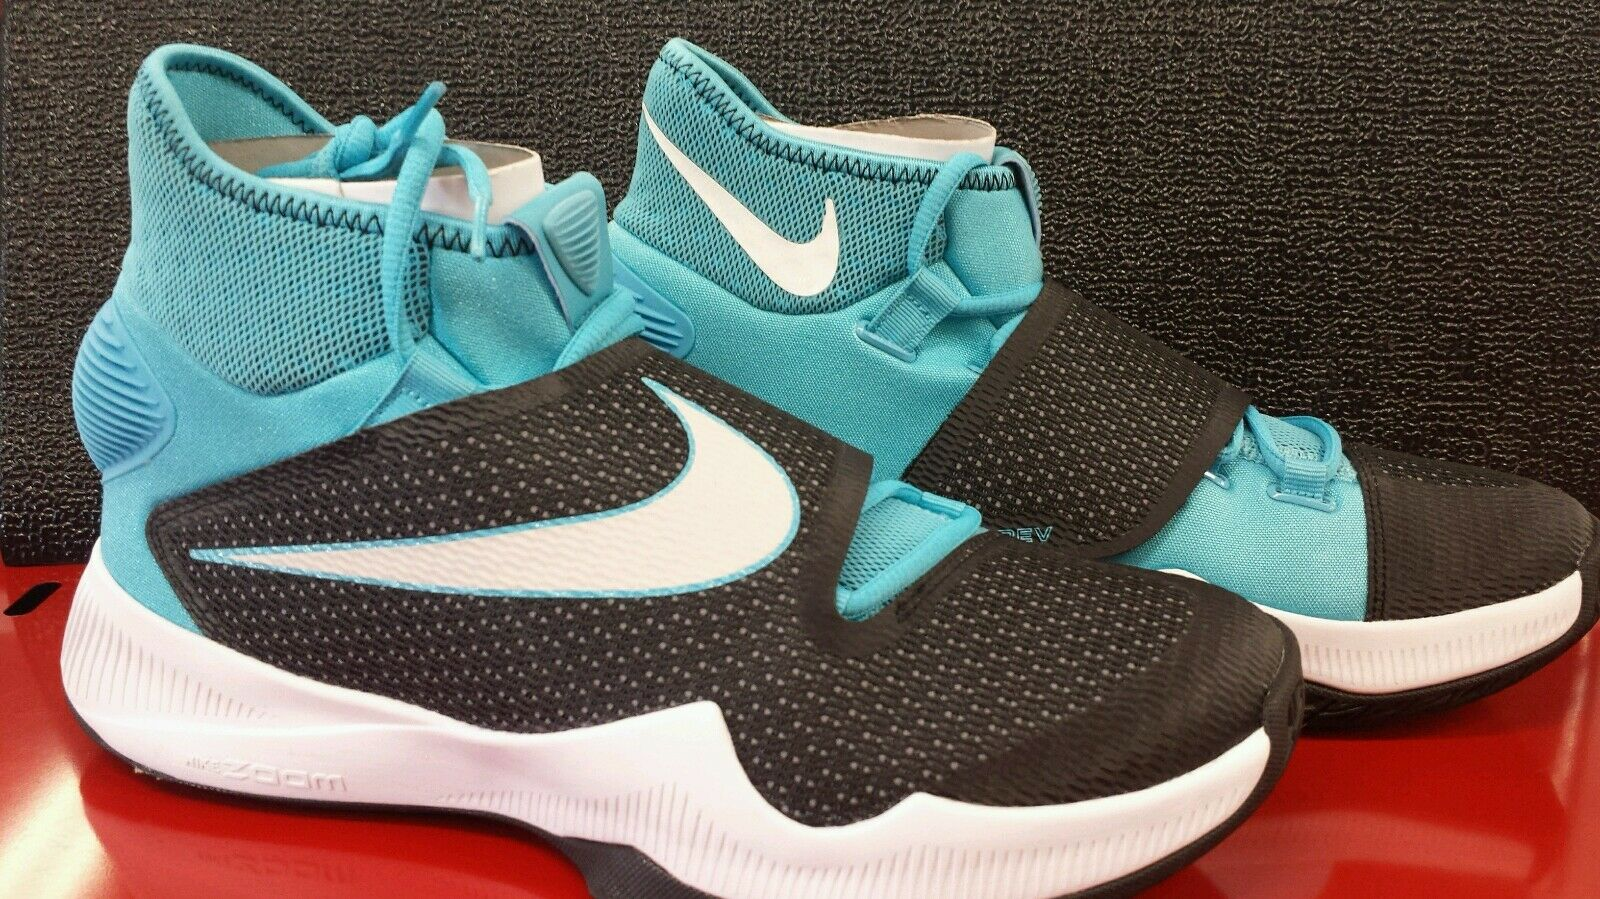 Nike Zoom Hyperrev 2016 EP Mens Basketball shoes Sneakers Size 9.5